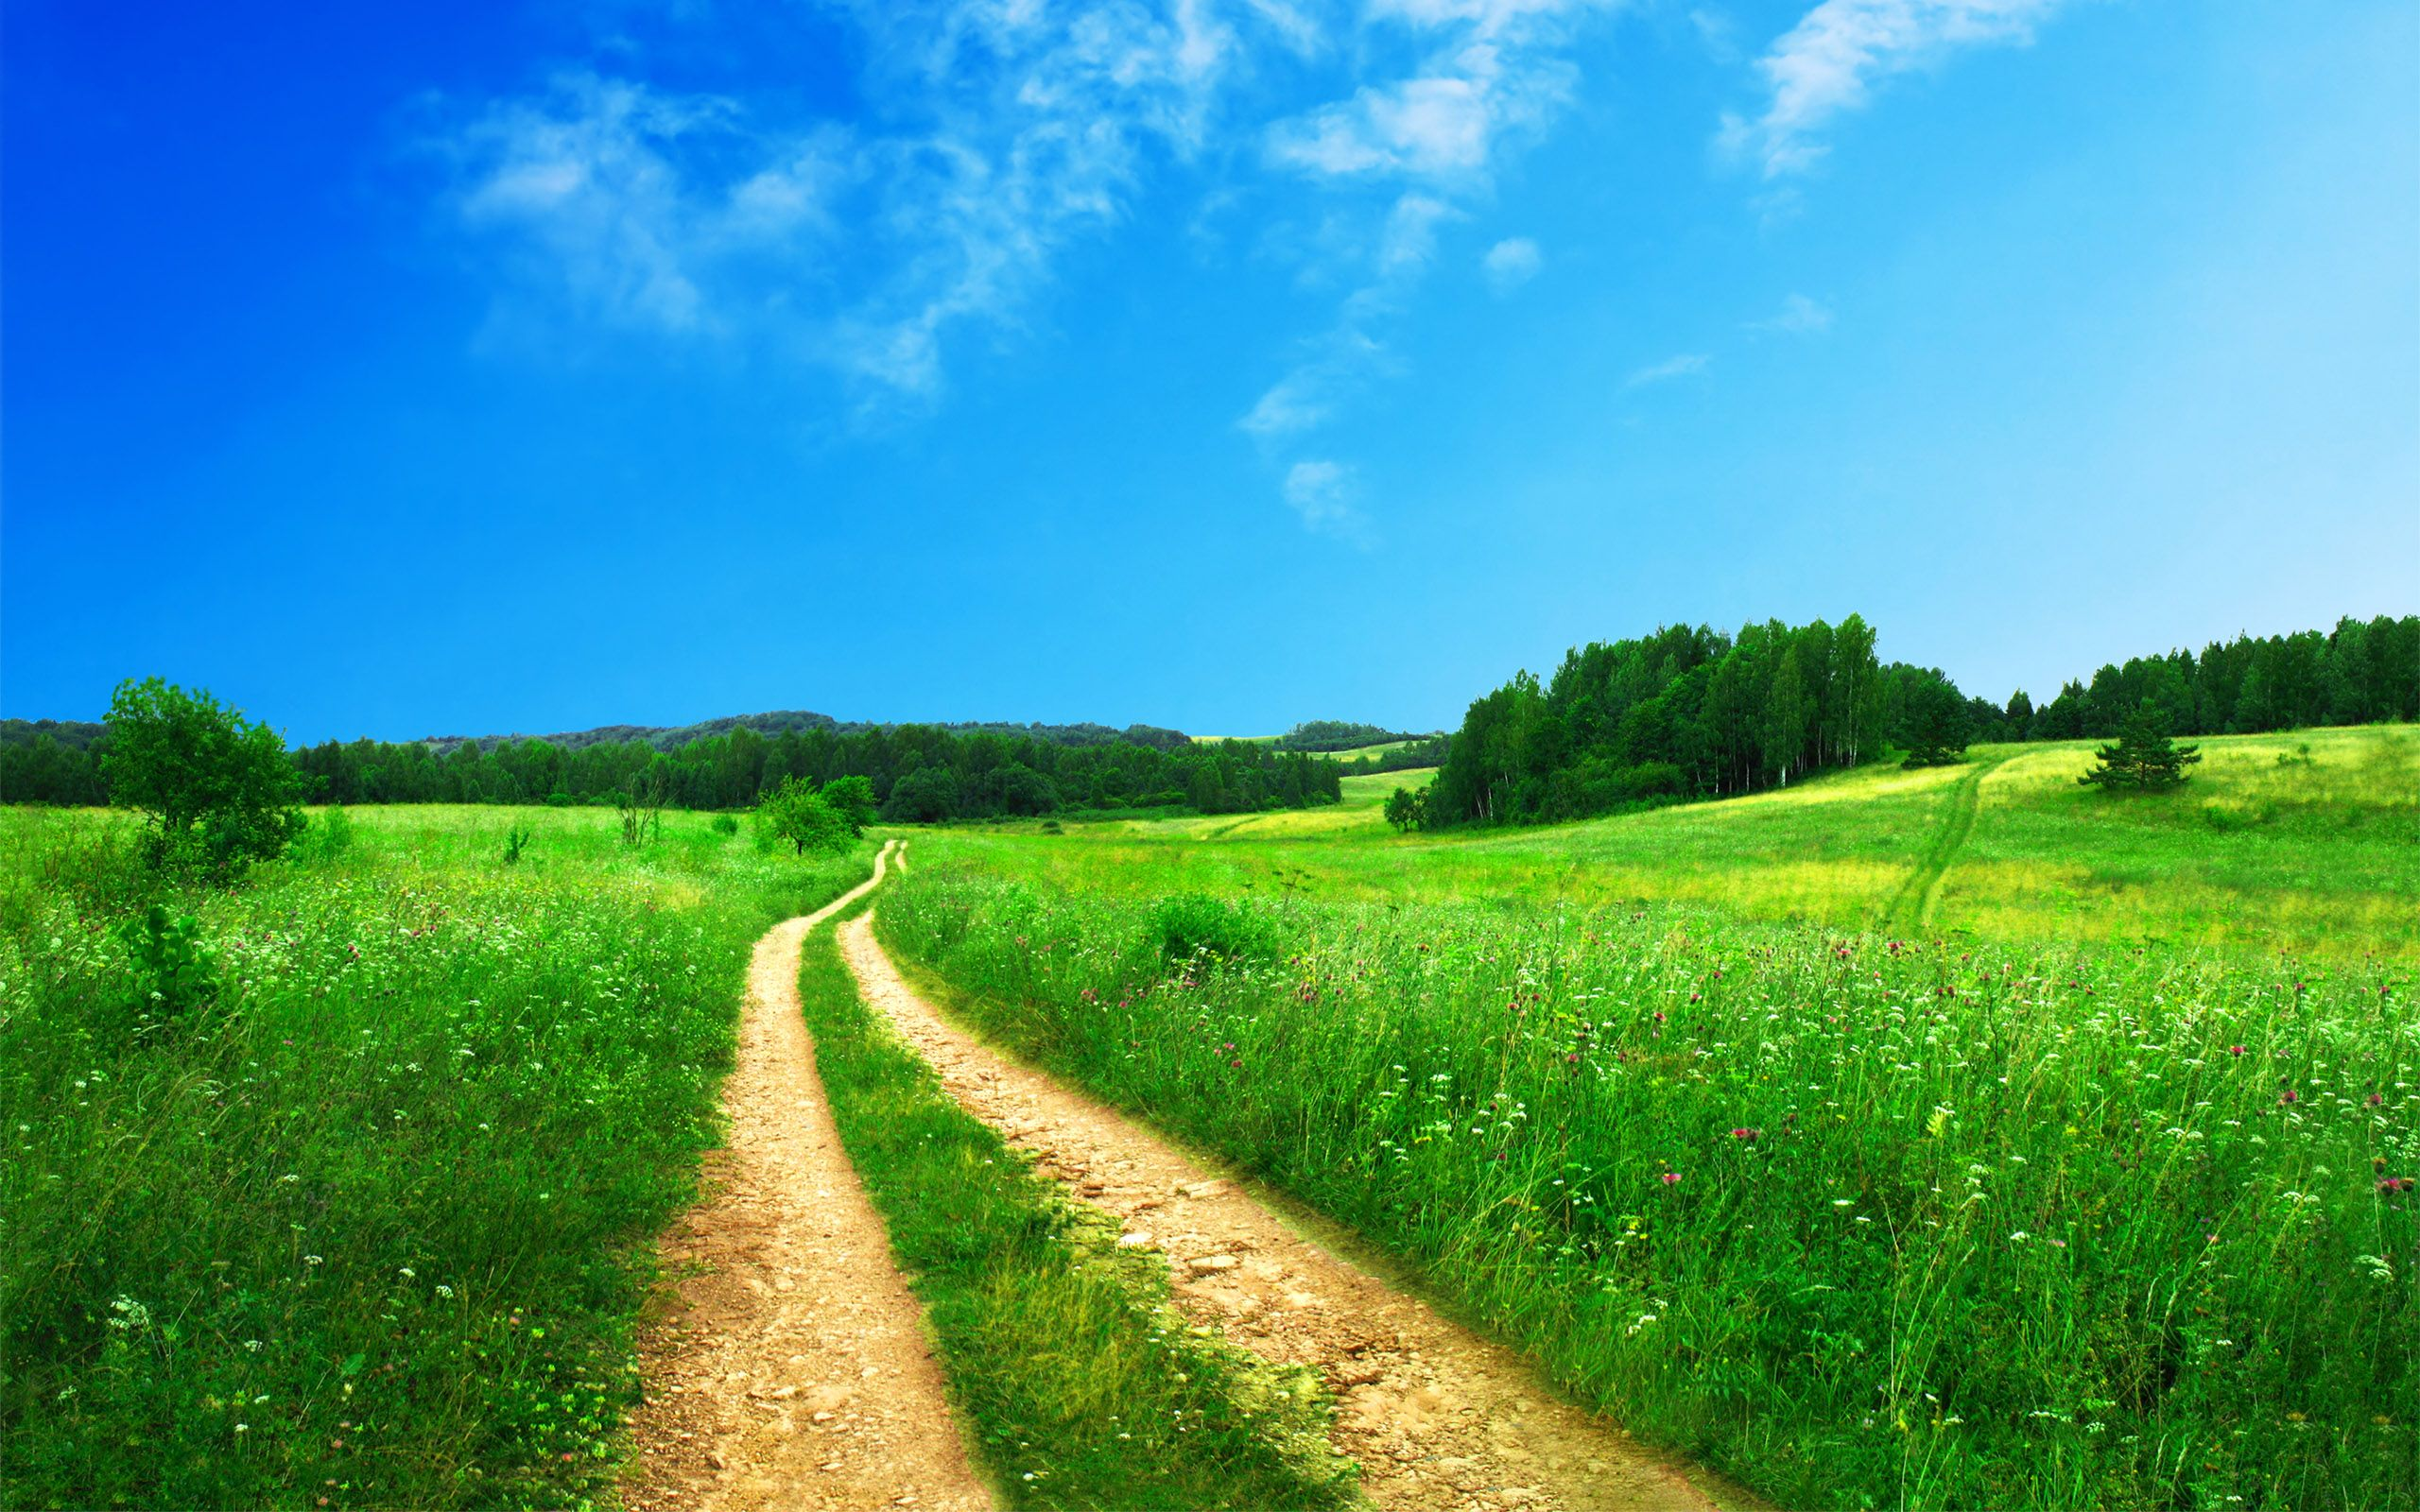 Summer Landscape Beautiful Scenery Wallpaper Scenery Wallpaper Landscape Wallpaper